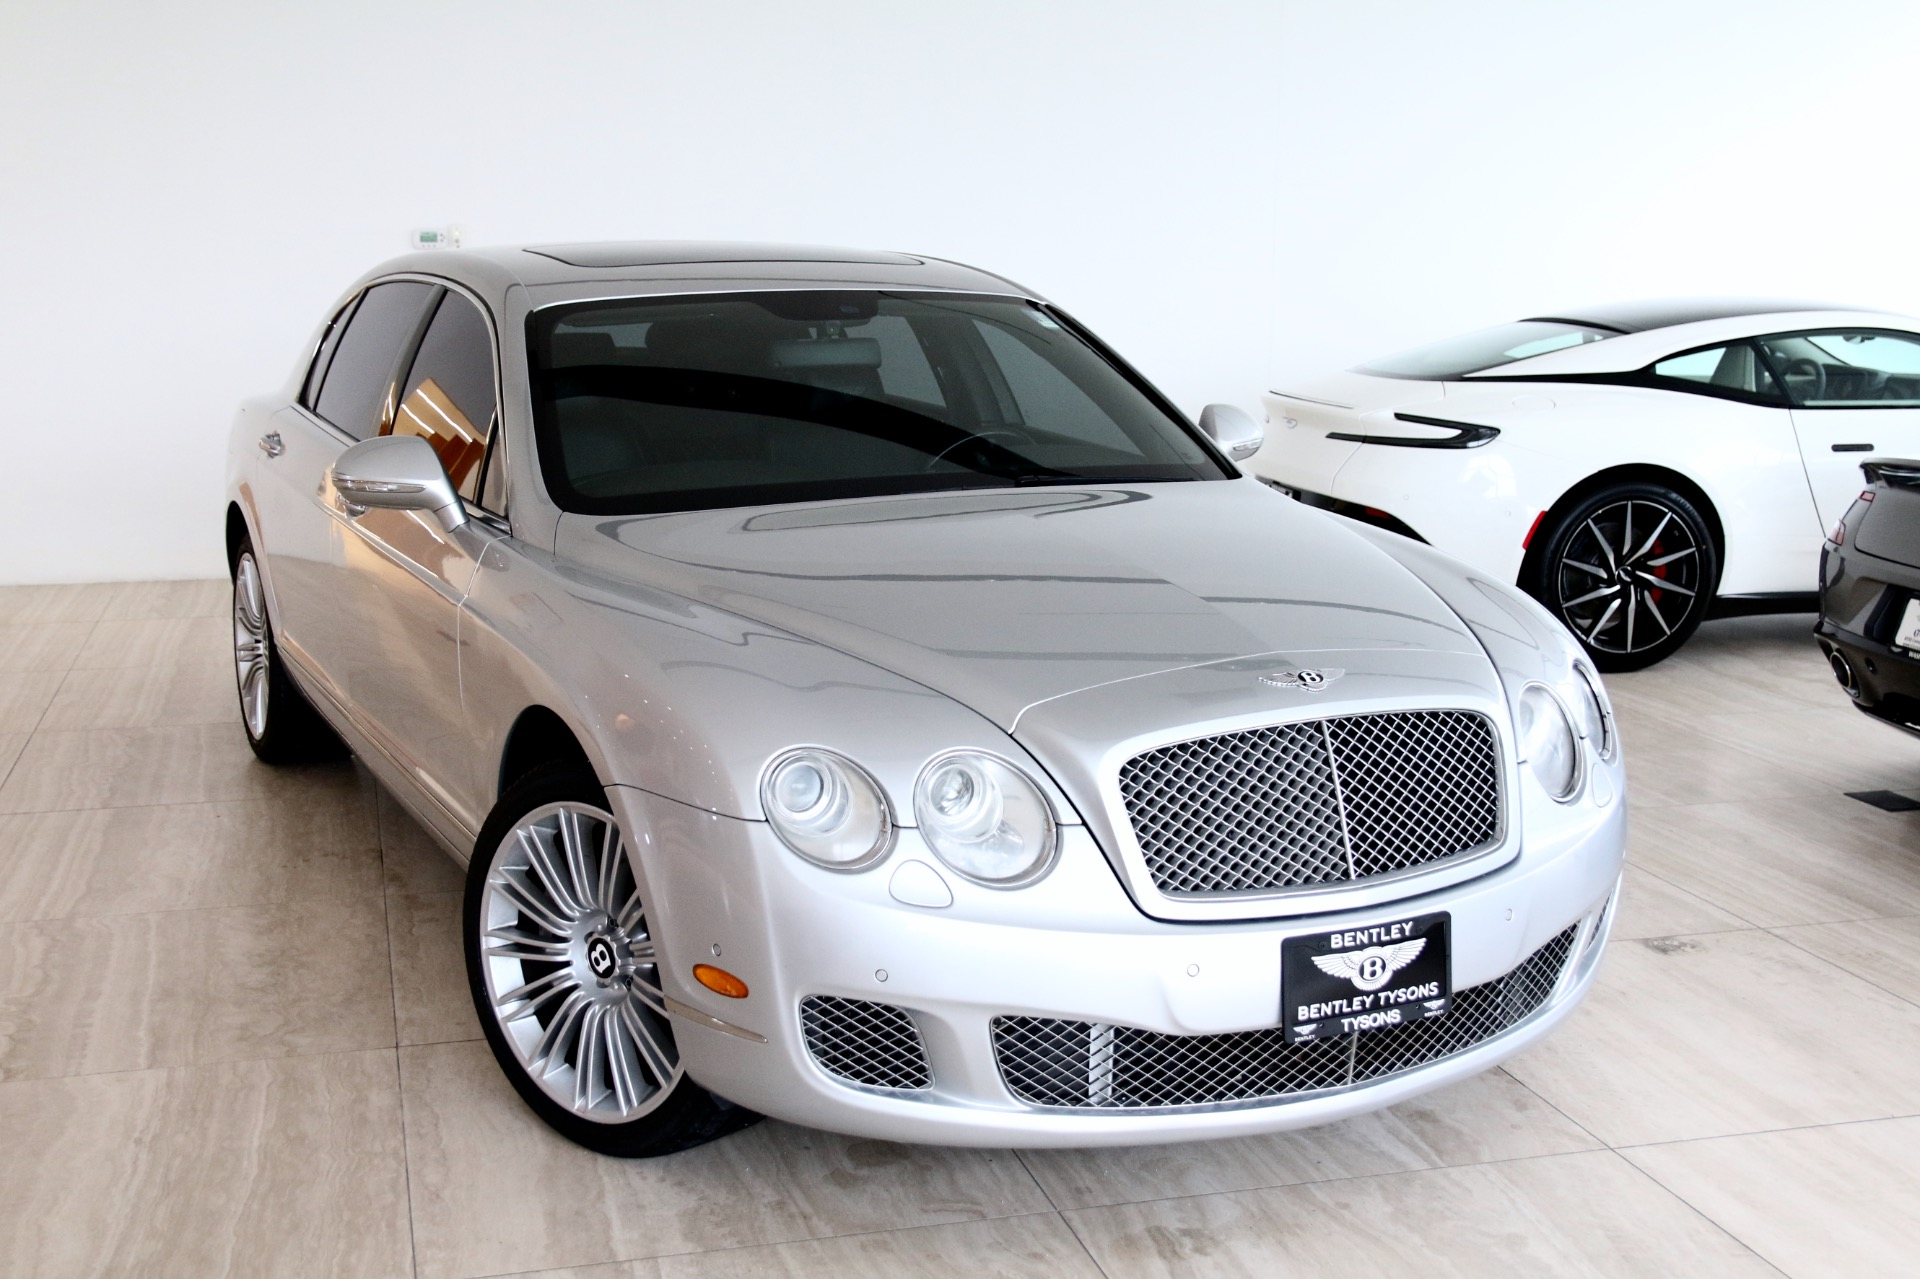 sale bentley main near stock c htm new maryland continental vienna in dealer l for gt va